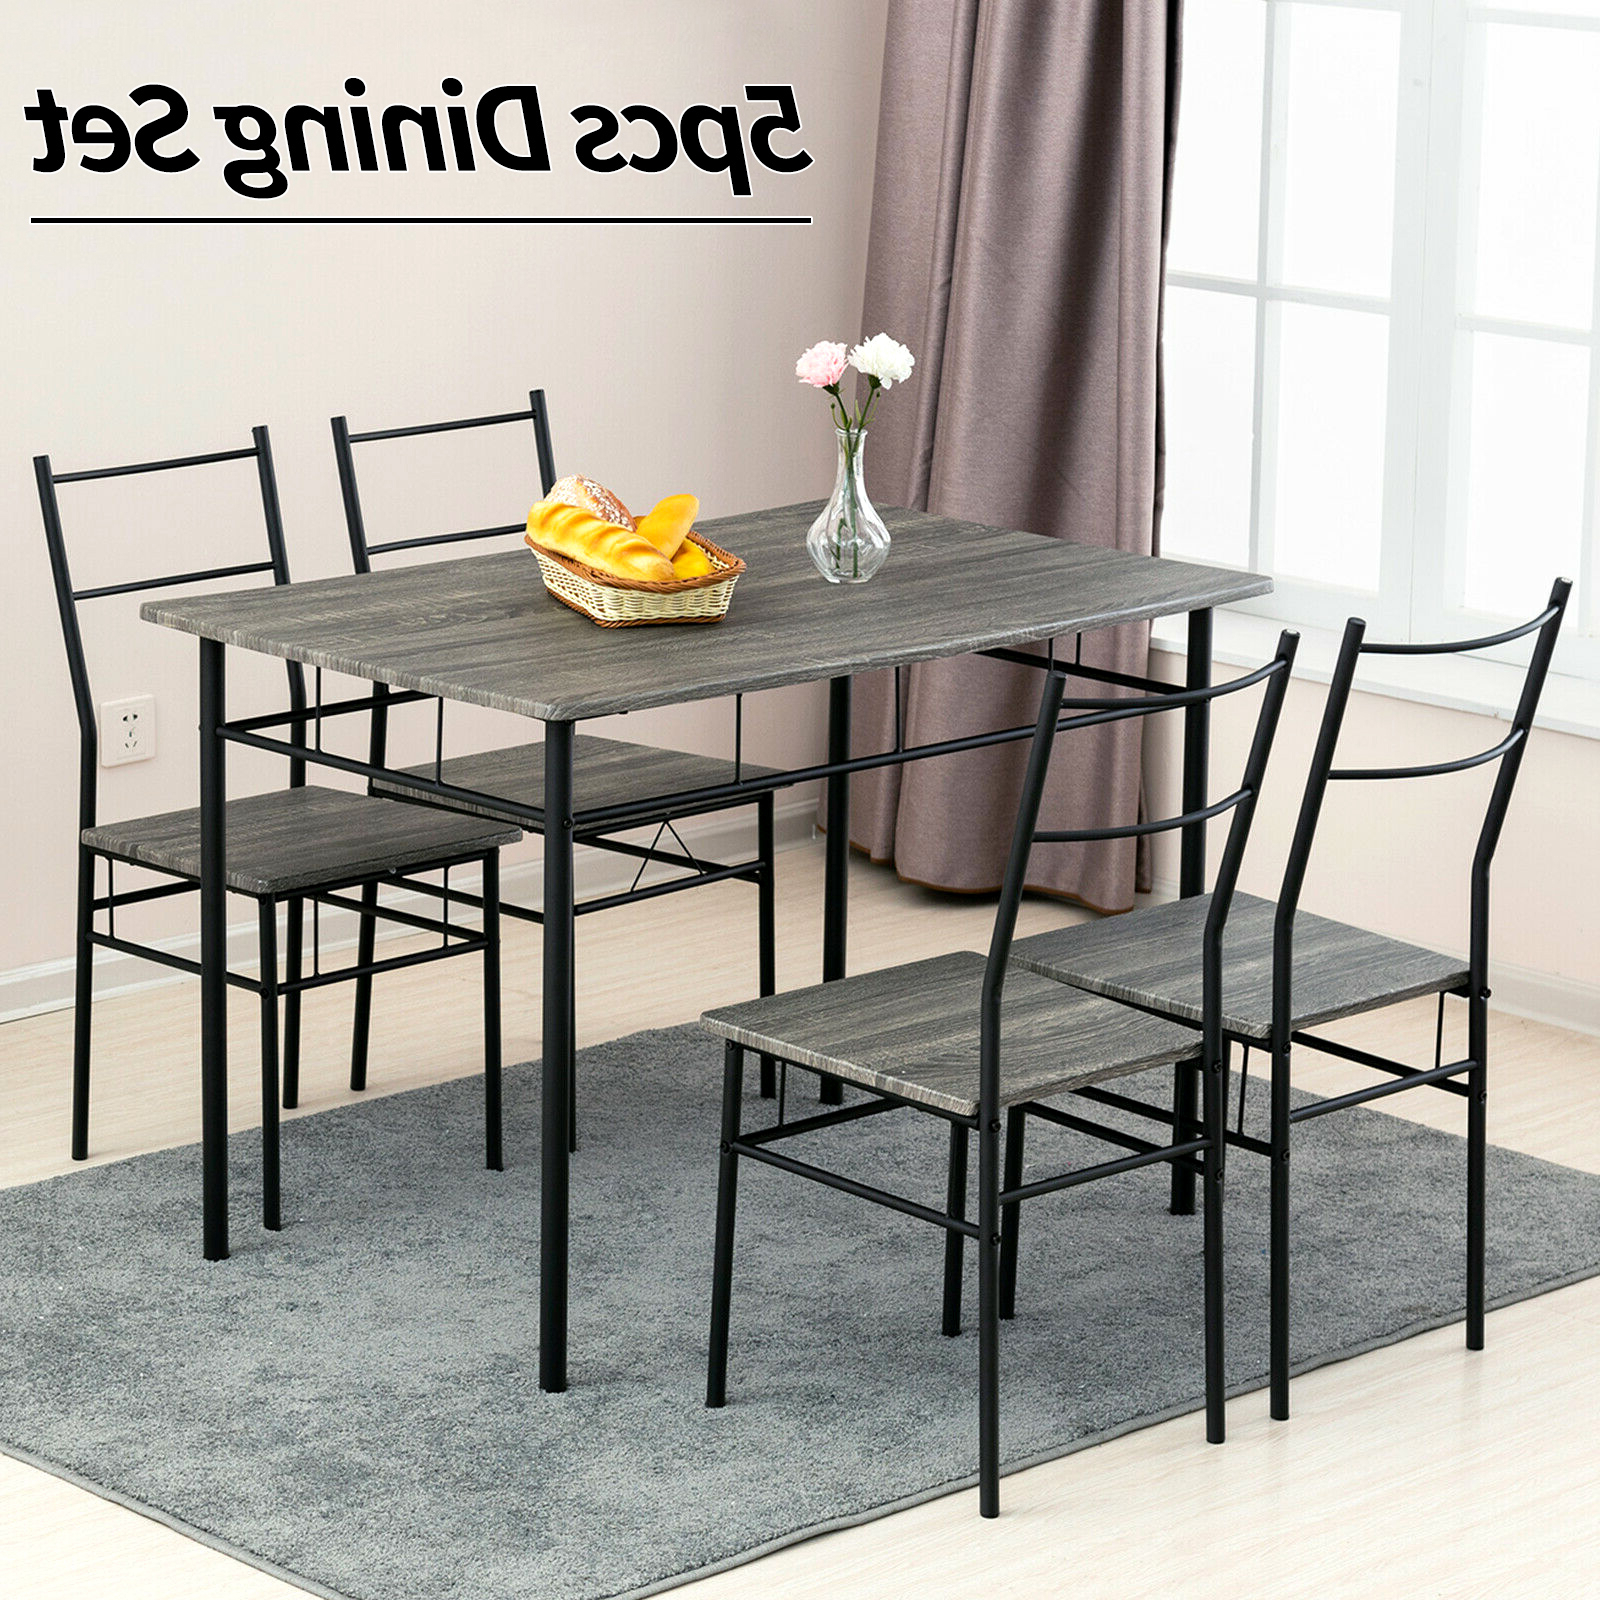 Favorite Wood Top Dining Tables With Details About 5 Piece Metal Dining Table Set 4 Chairs Wood Top Dining Room  Home Furniture Grey (View 10 of 25)